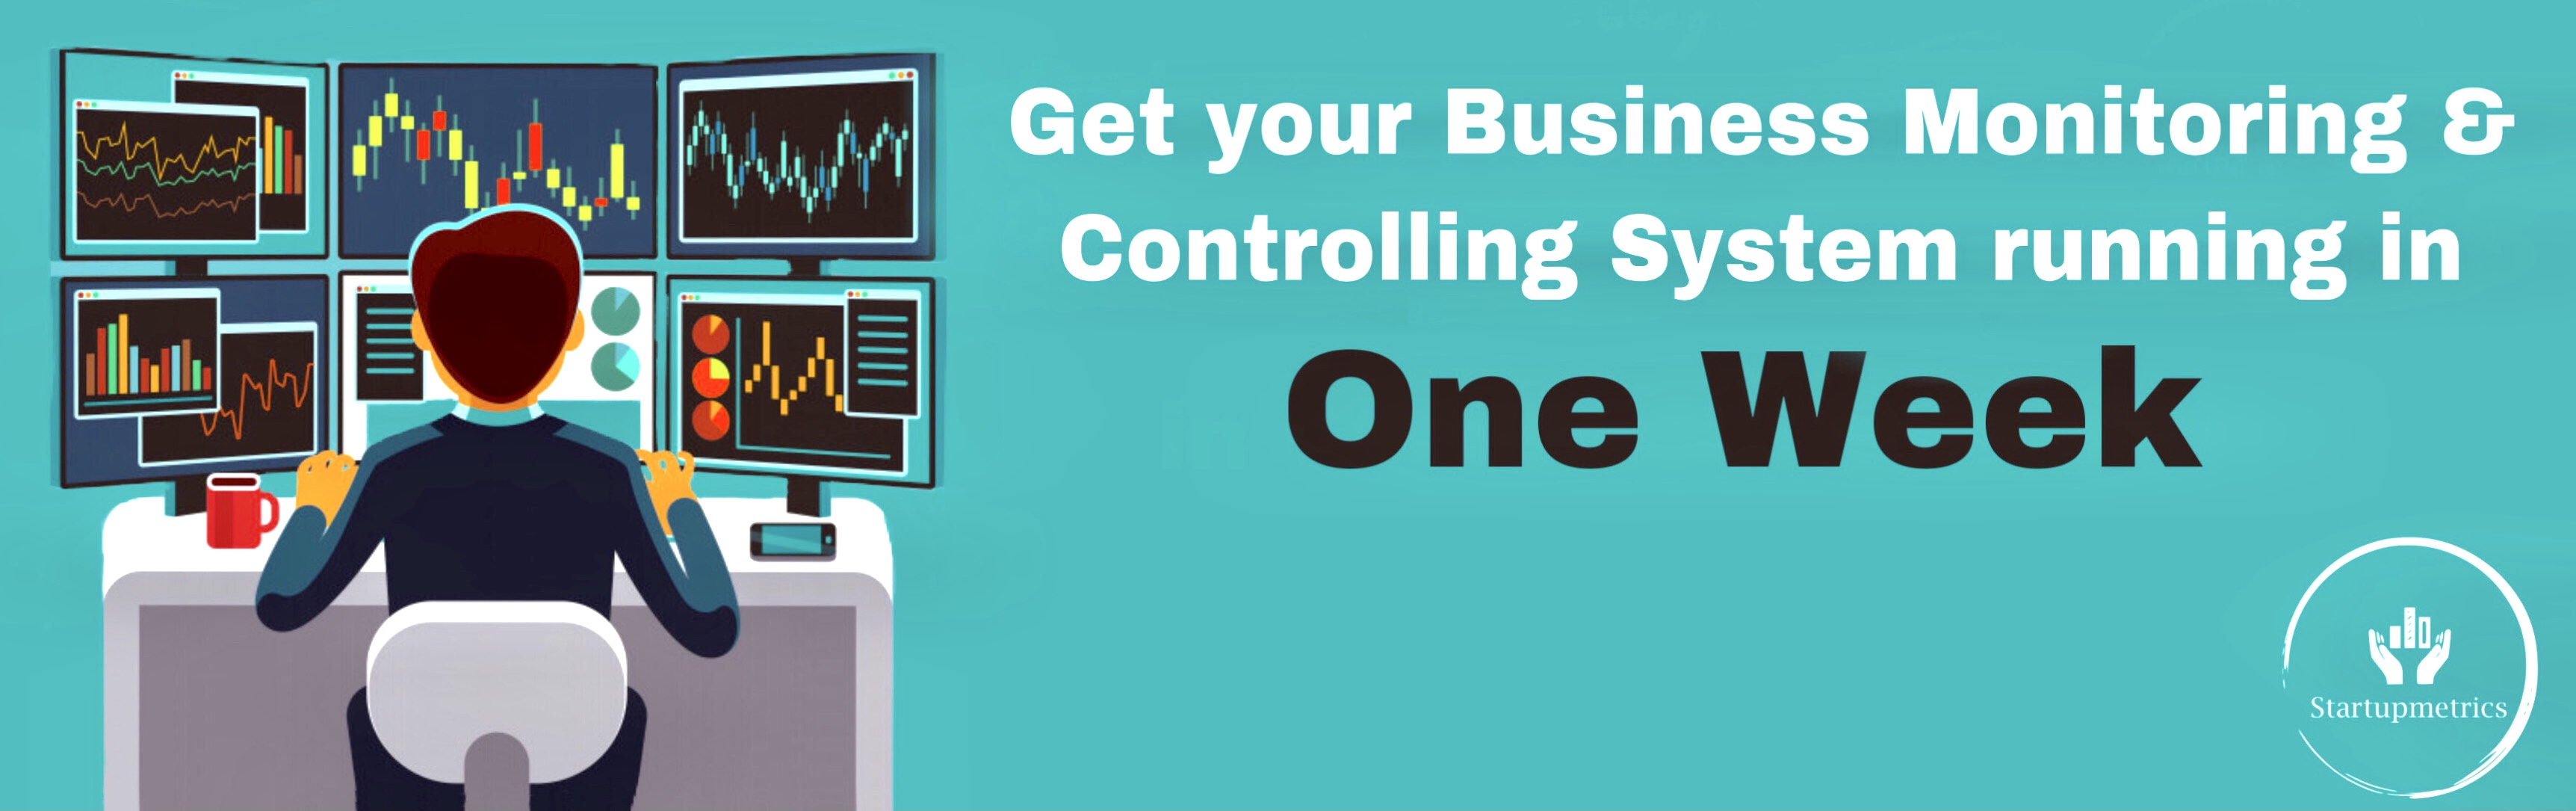 Business Monitoring and Controlling